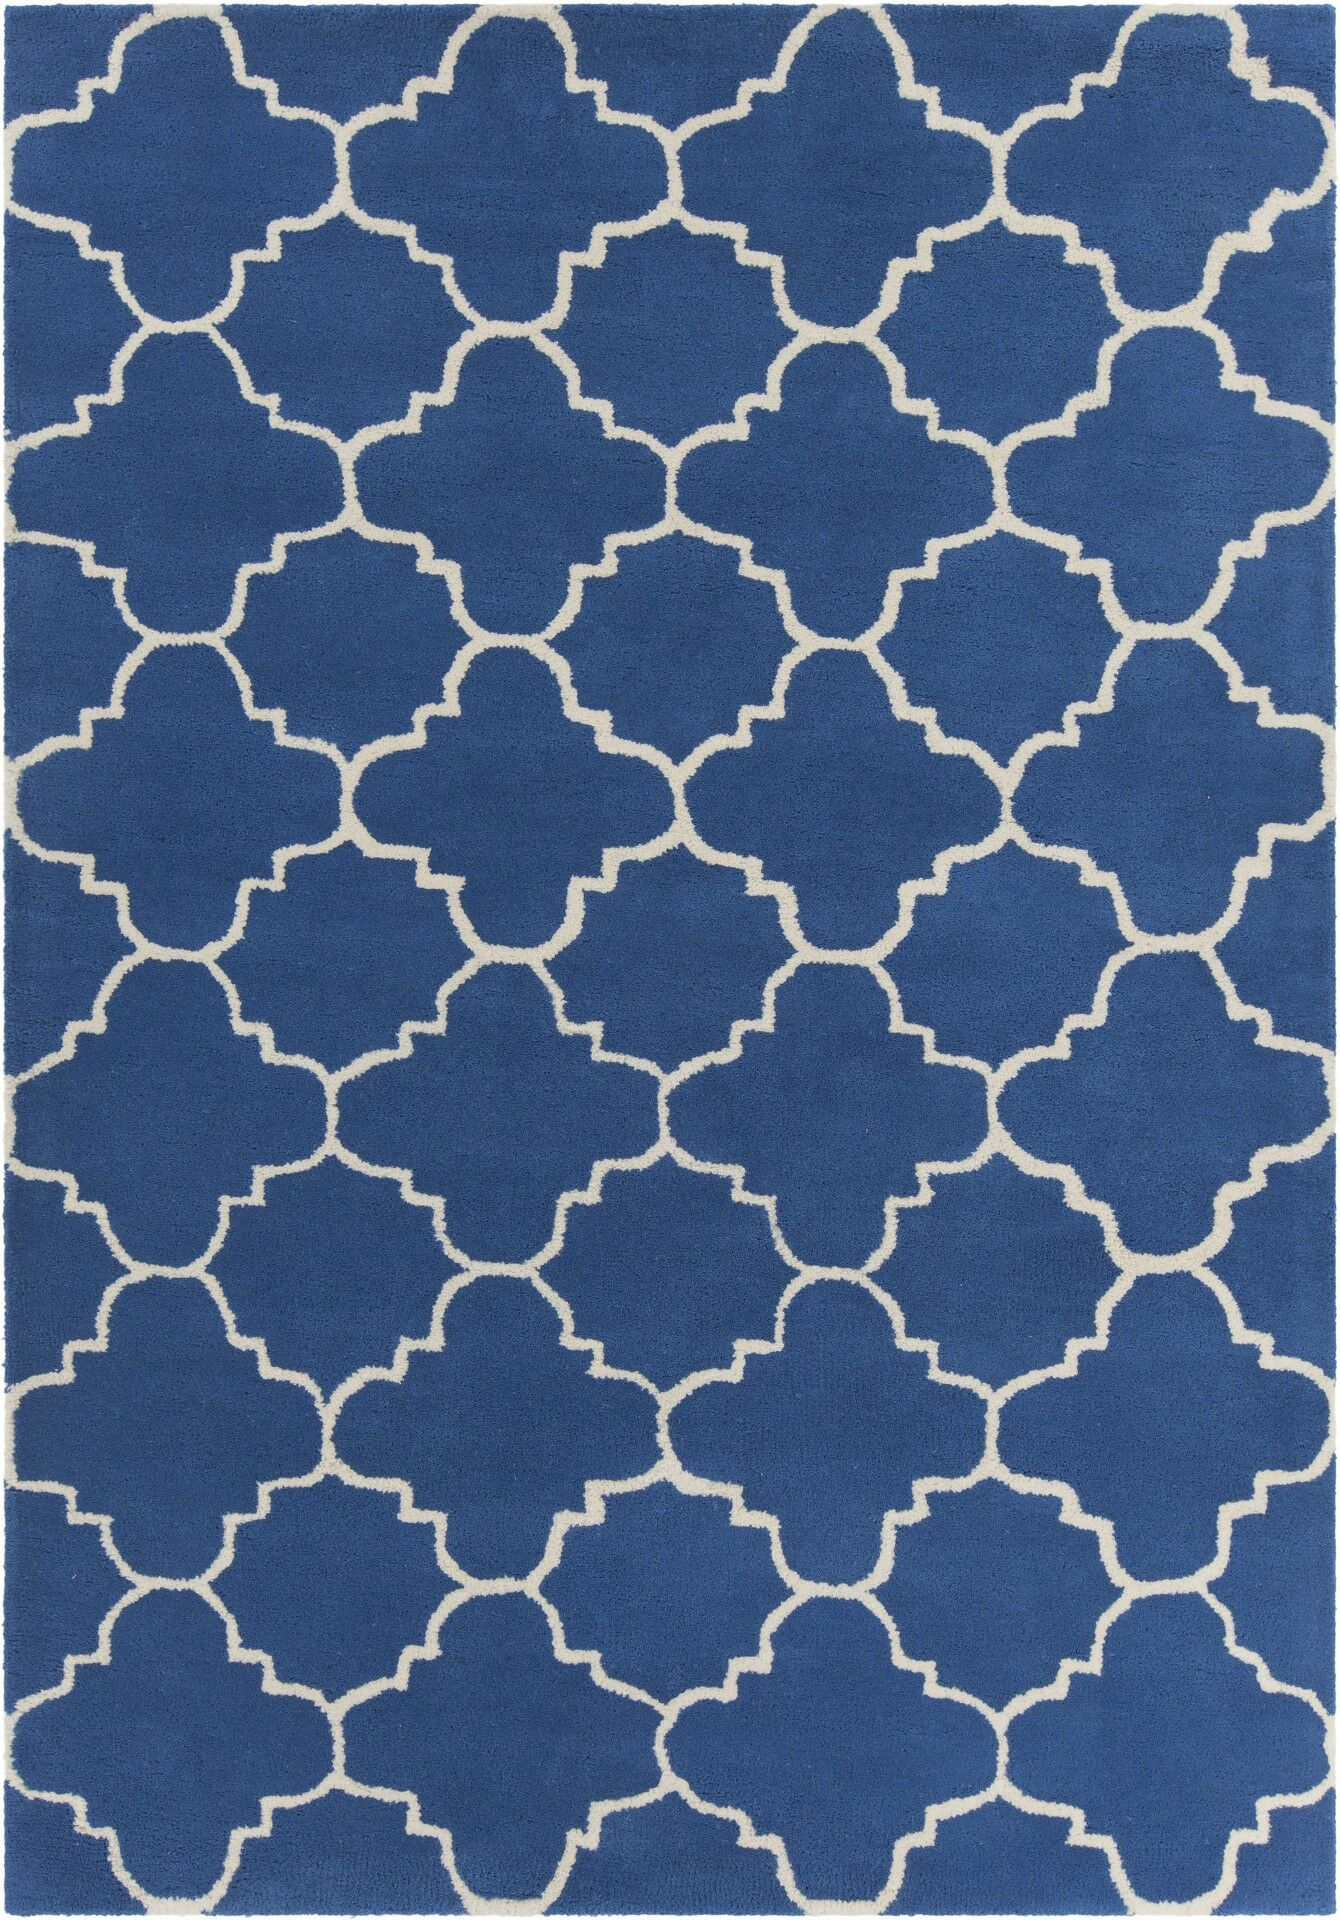 Electra Patterned Contemporary Wool Blue/White Area Rug Rug Size: 5' x 7'